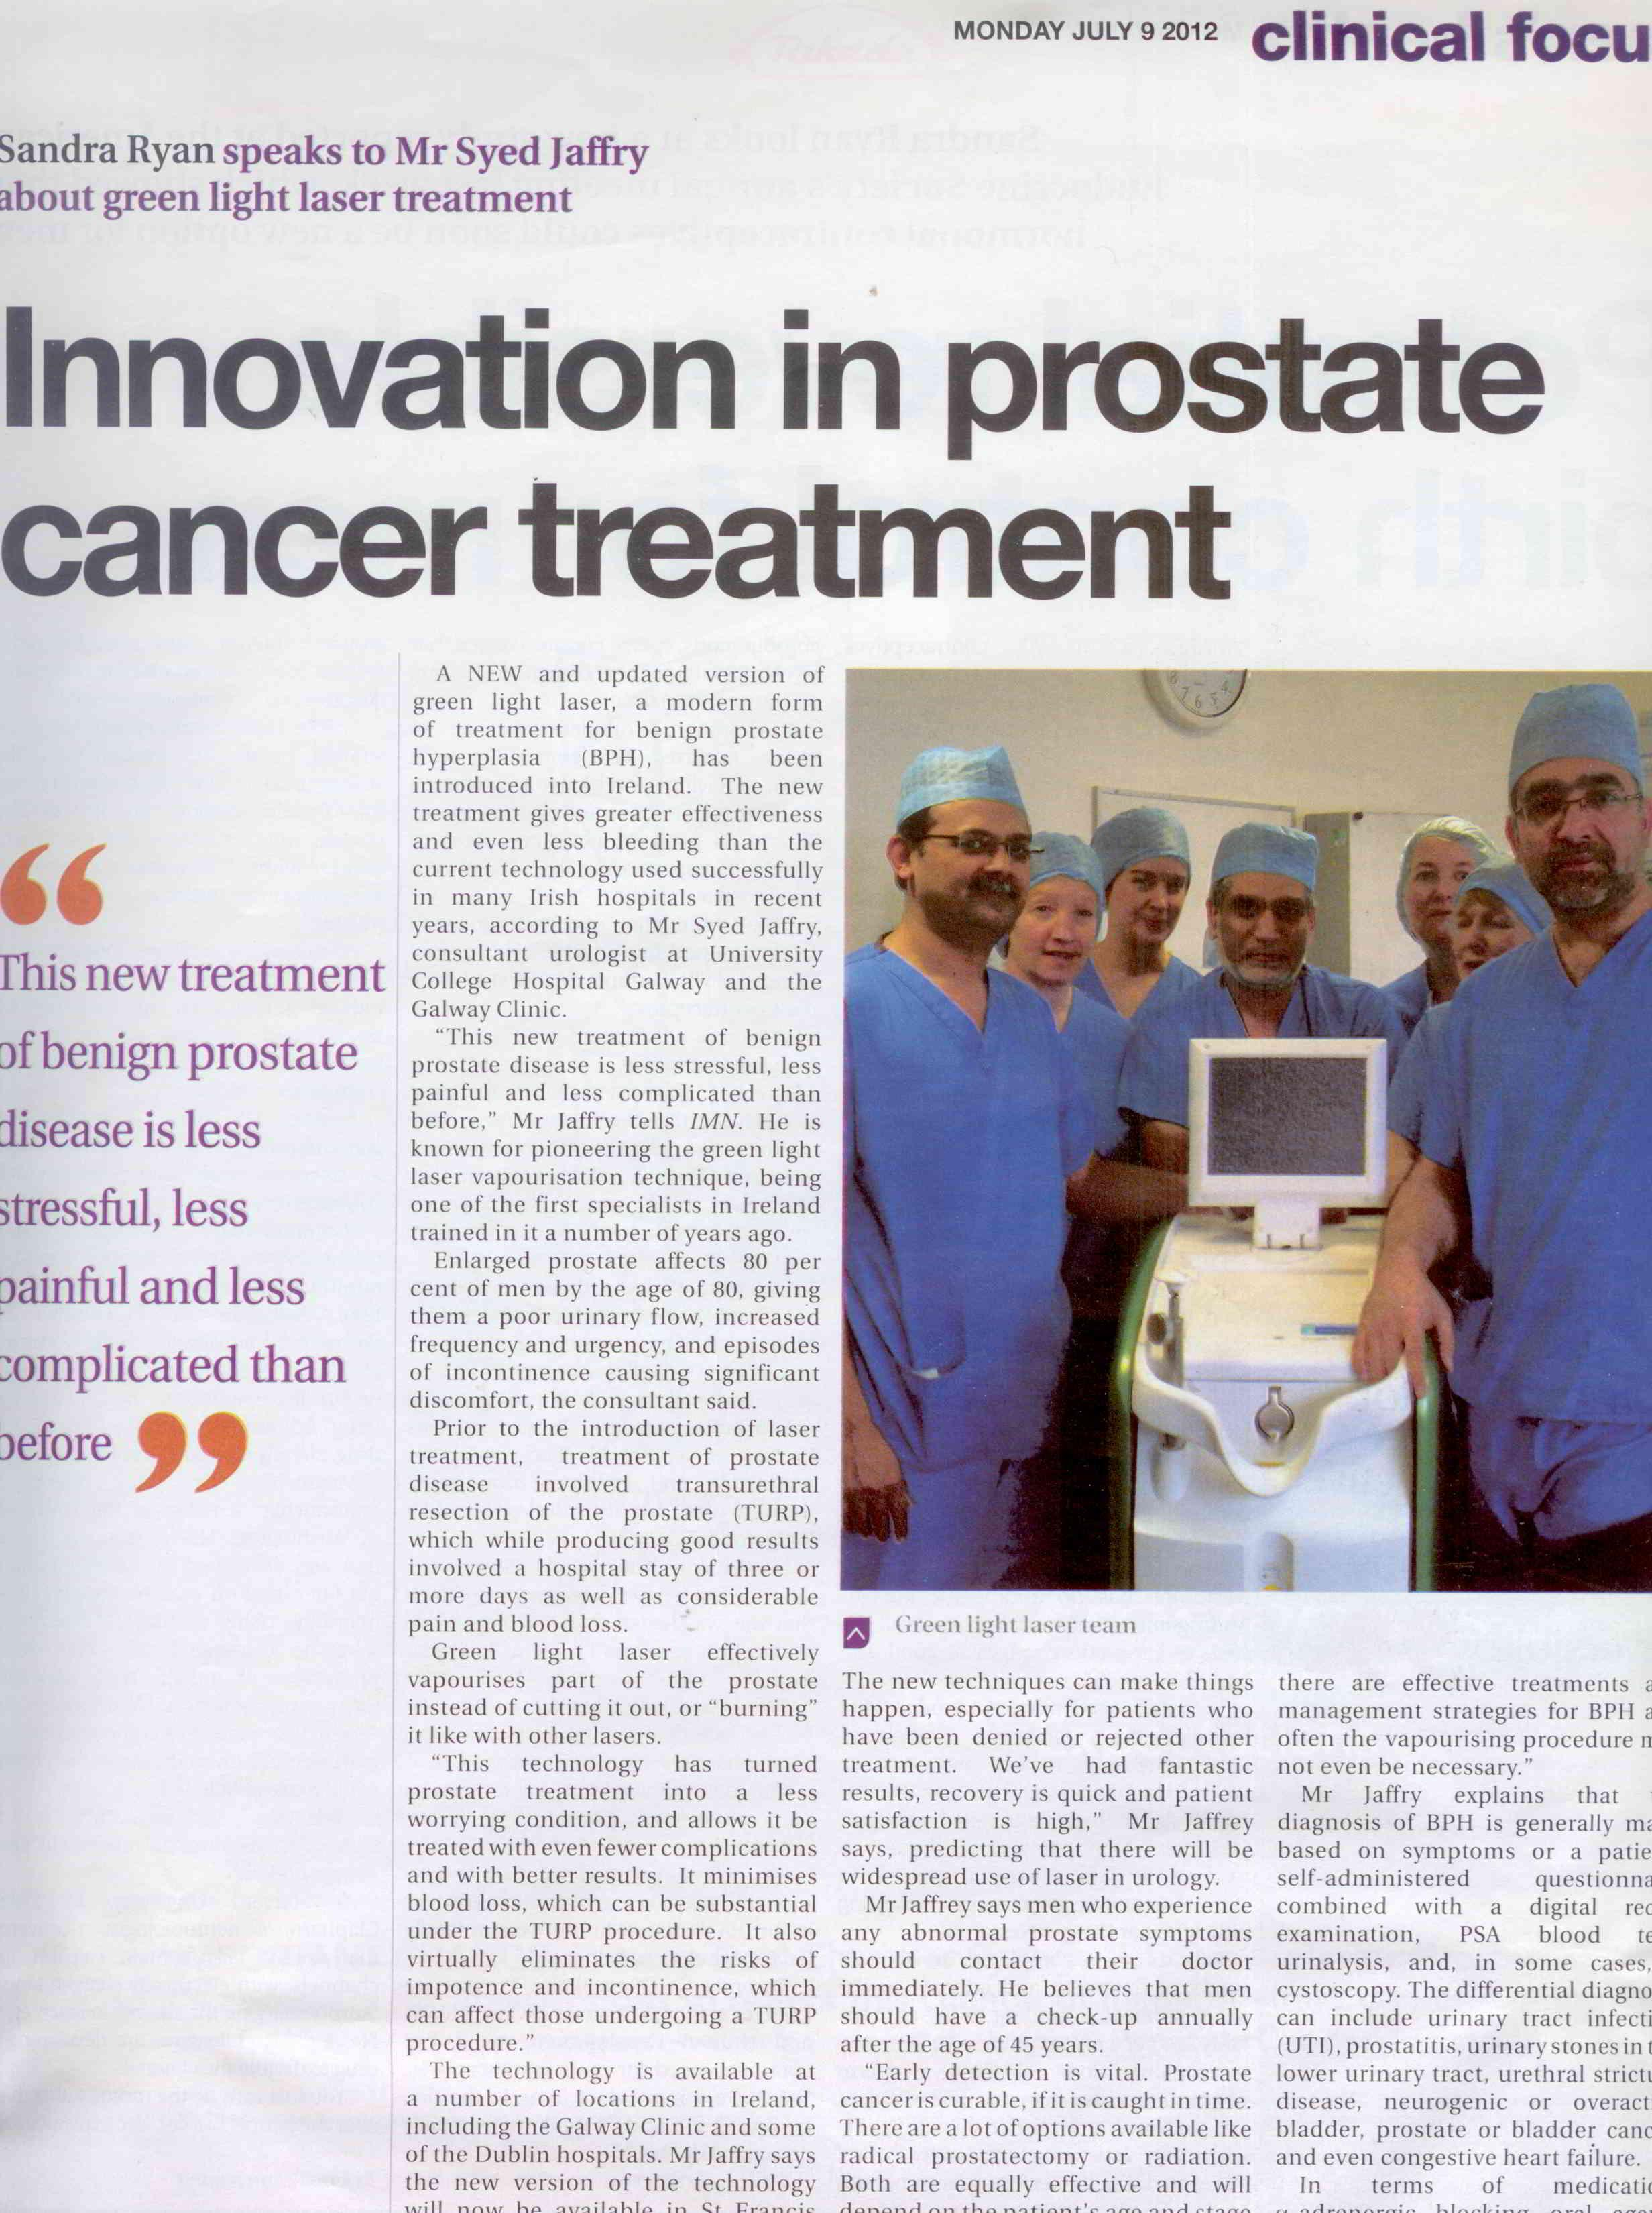 Innovation in Prostate Cancer Treatment